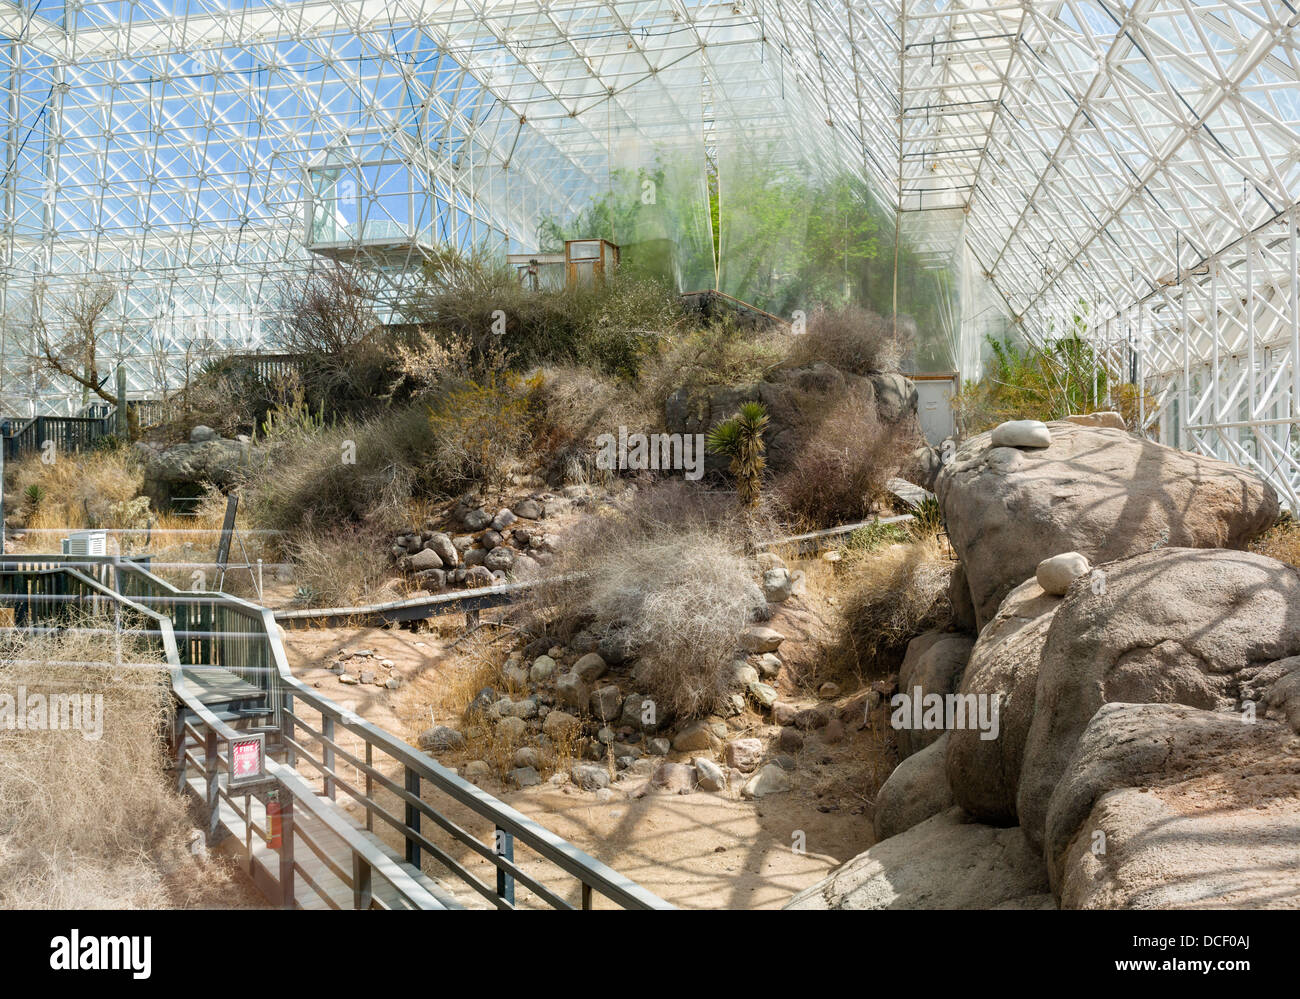 The Desert area, Biosphere 2 Earth Systems Science Research Facility at University of Arizona, Oracle, near Tucson, - Stock Image